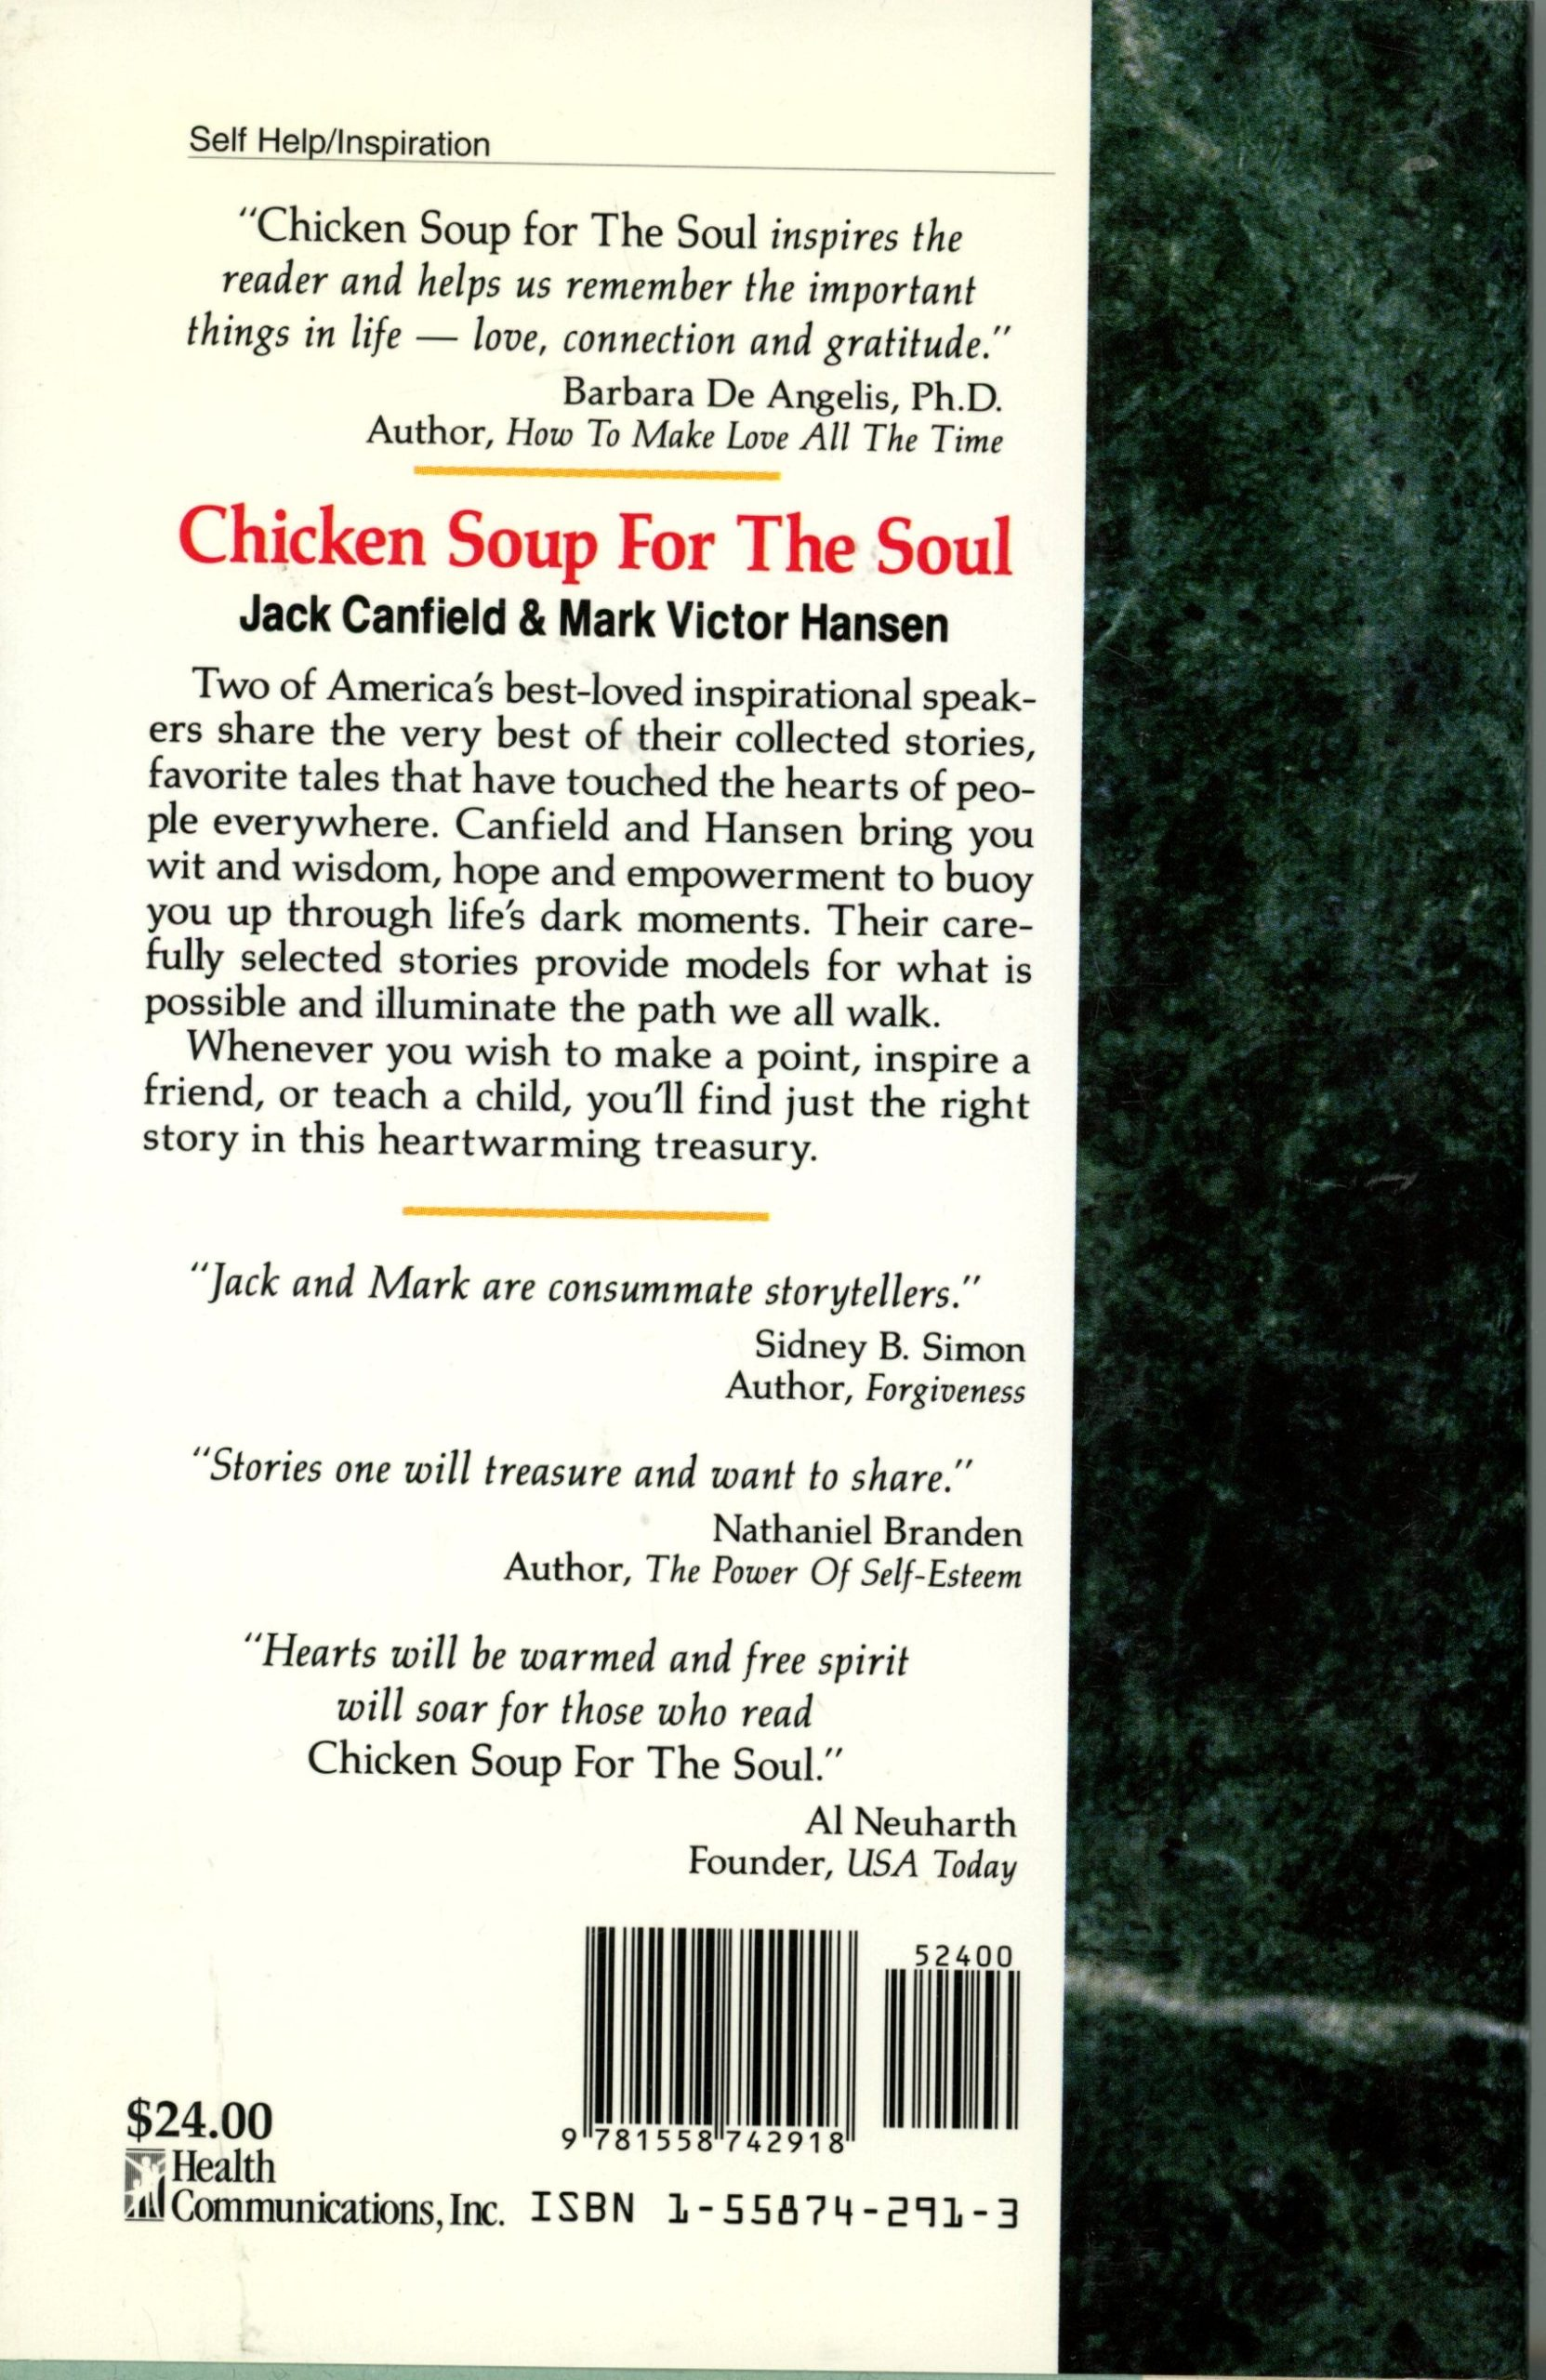 chicken soup back cover